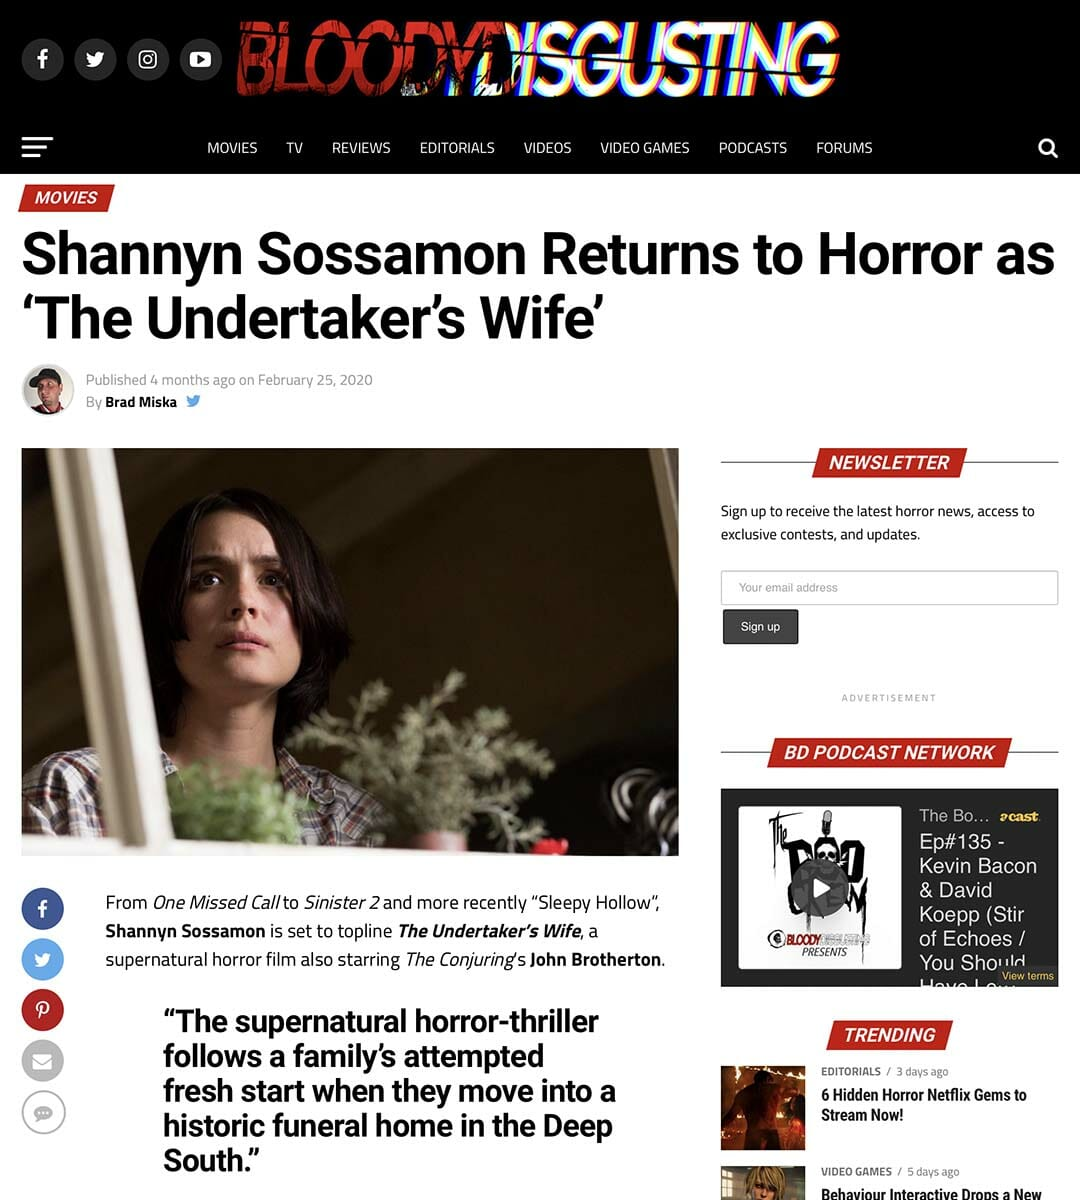 BLOODY DISGUSTING: Shannyn Sossamon Returns to Horror as 'The Undertaker's Wife'